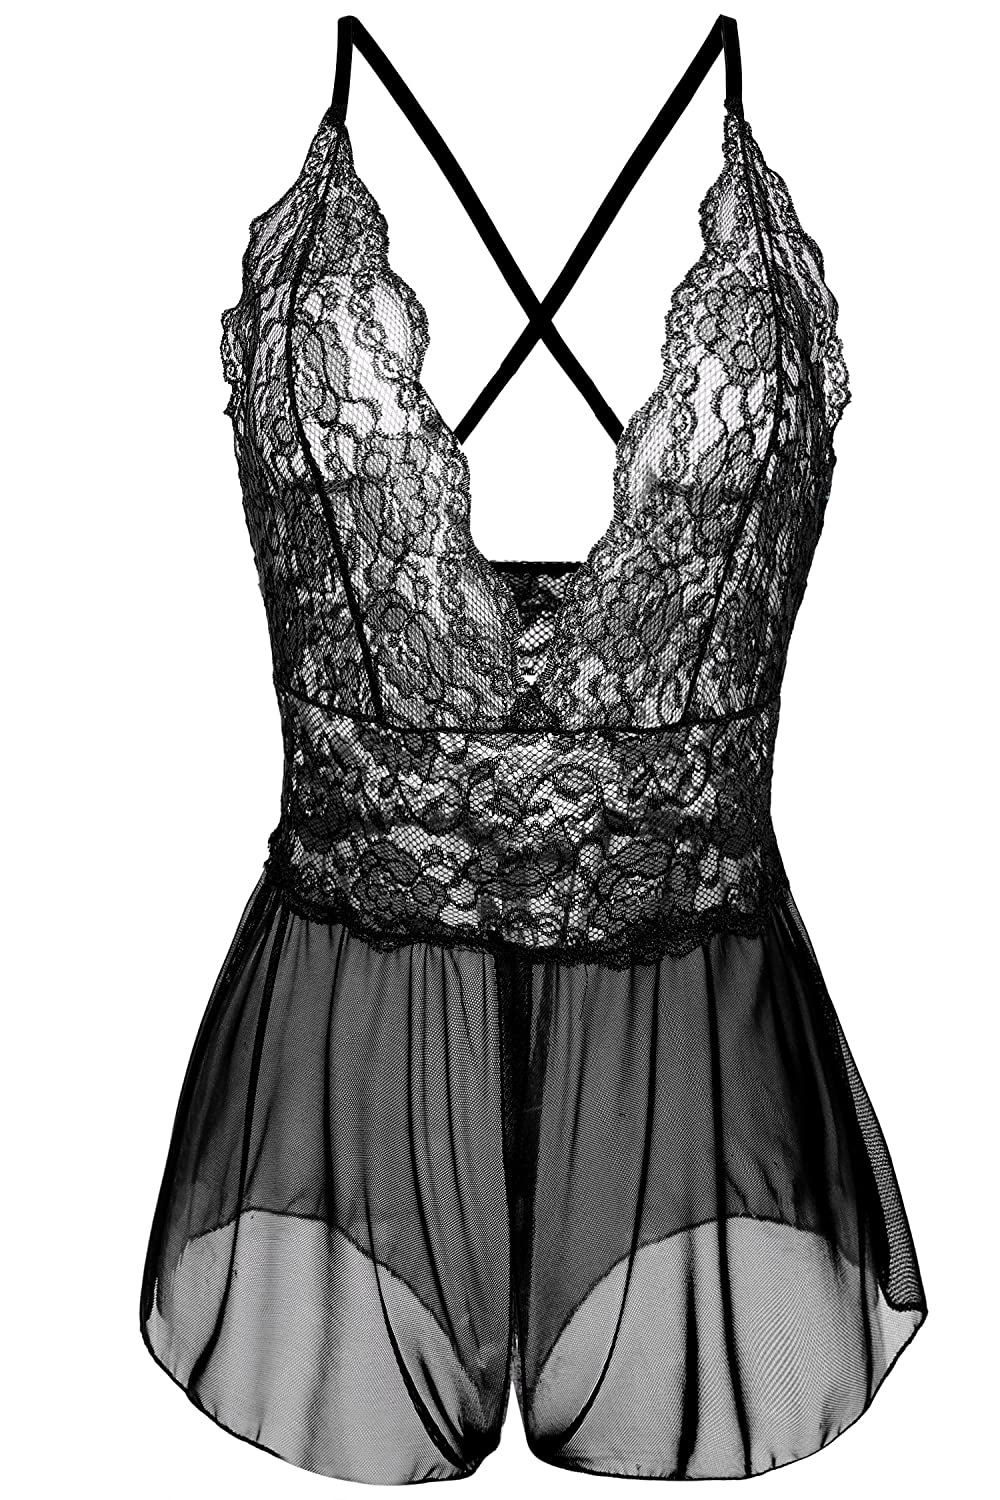 9f962e54eb2d3 This women lingerie bodysuit has crisscross straps in the back and the  straps are adjustable just like the straps on a bra. Deep V halter lingerie  one piece ...